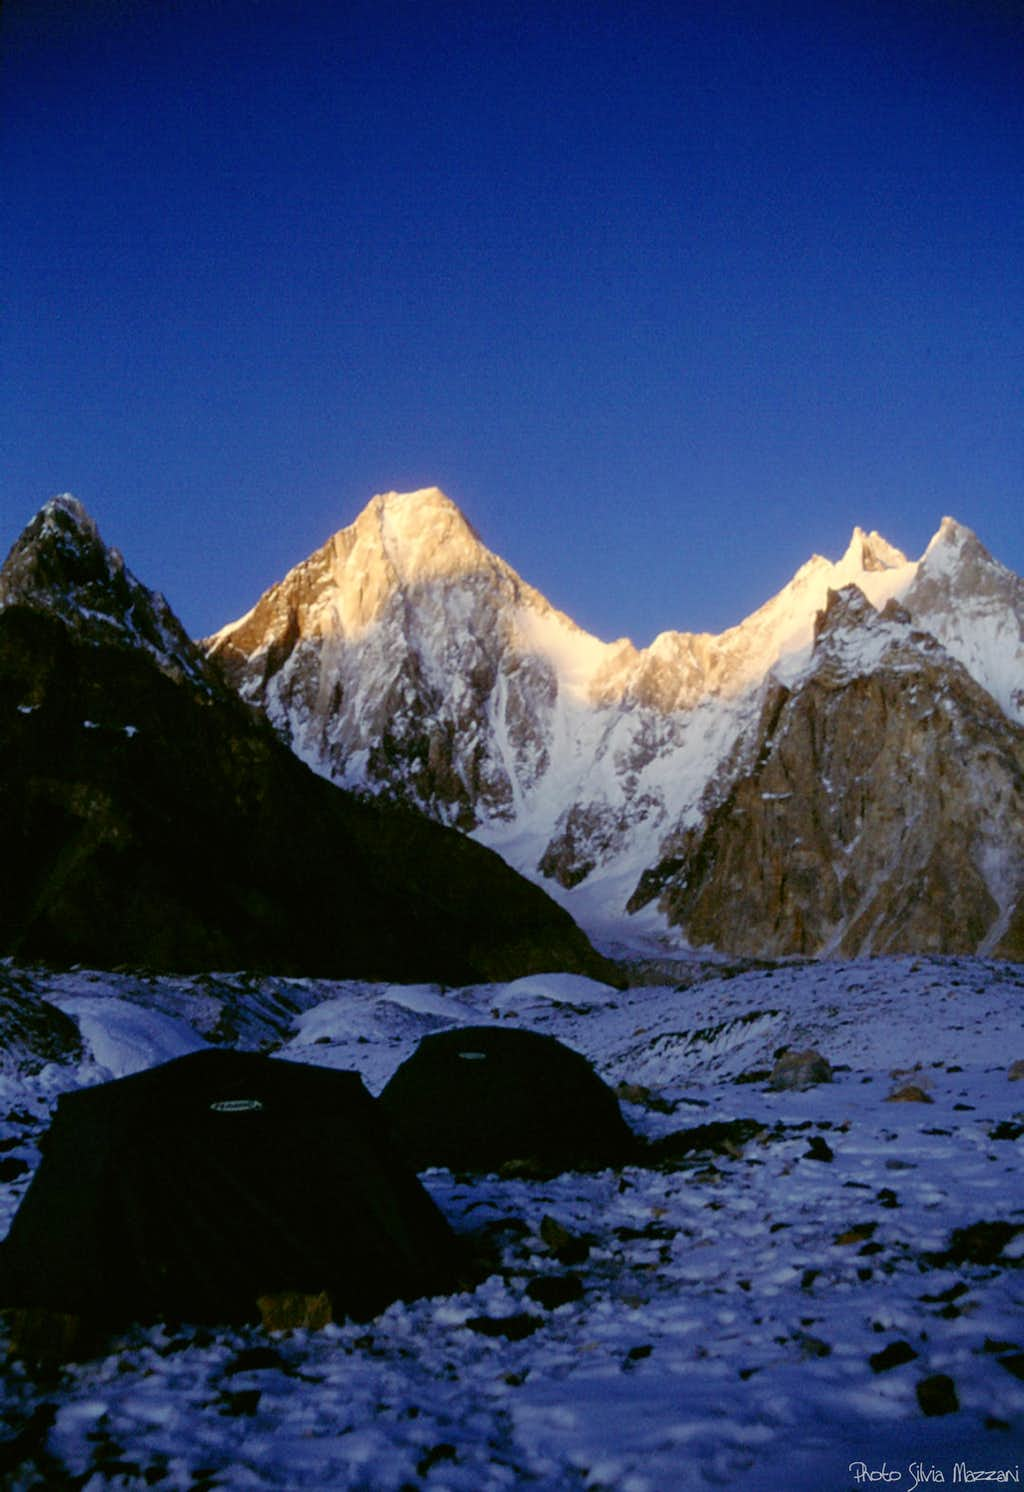 Sunset on Gasherbrum IV, one of the finest peak in the world